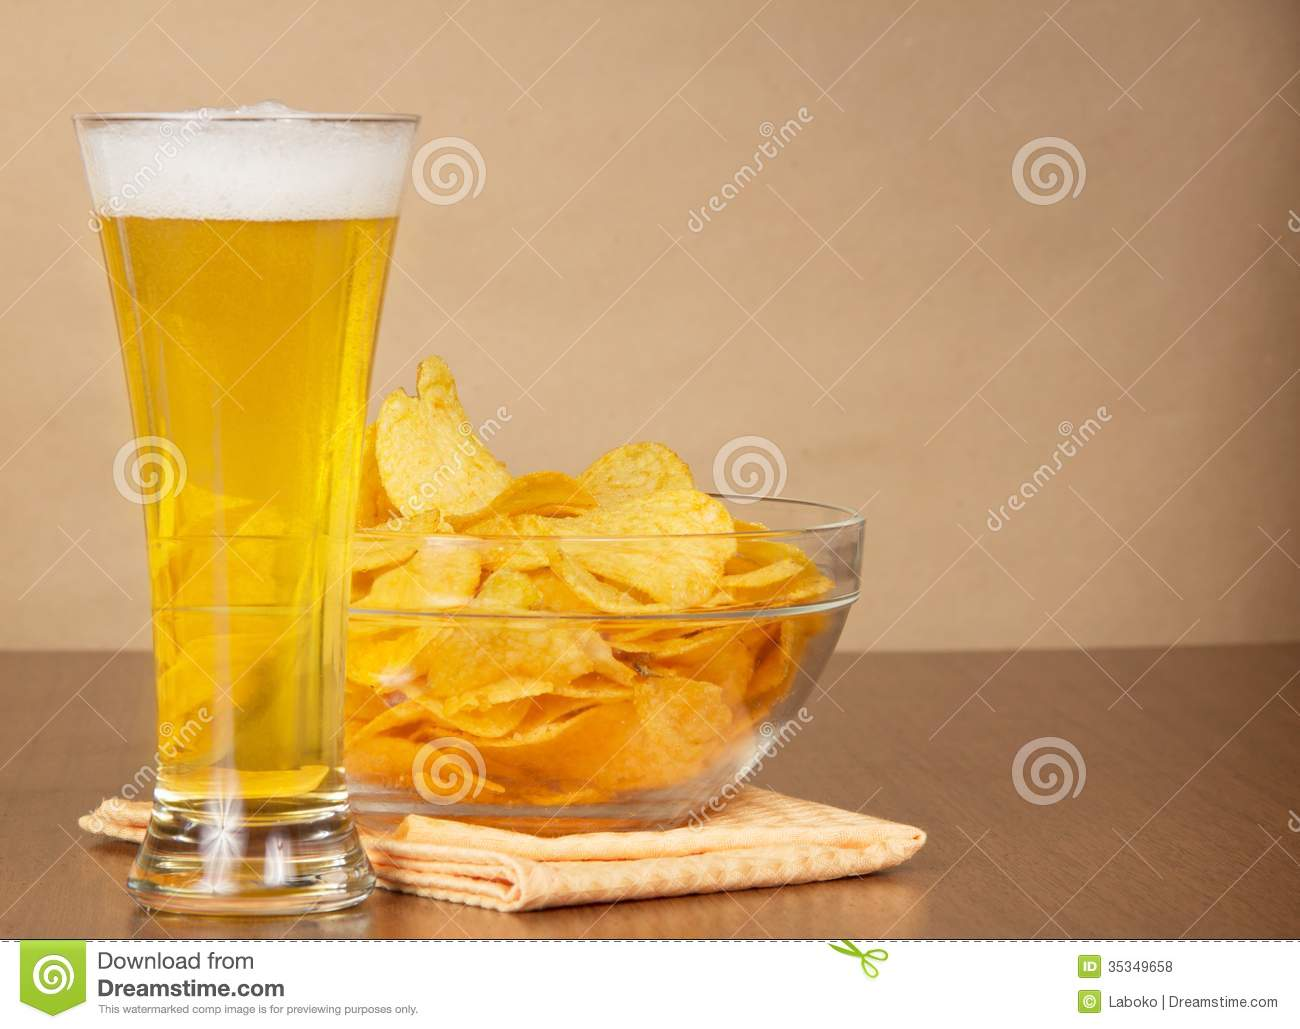 Glass Of Beer, Bowl With Chips Royalty Free Stock Photos ...